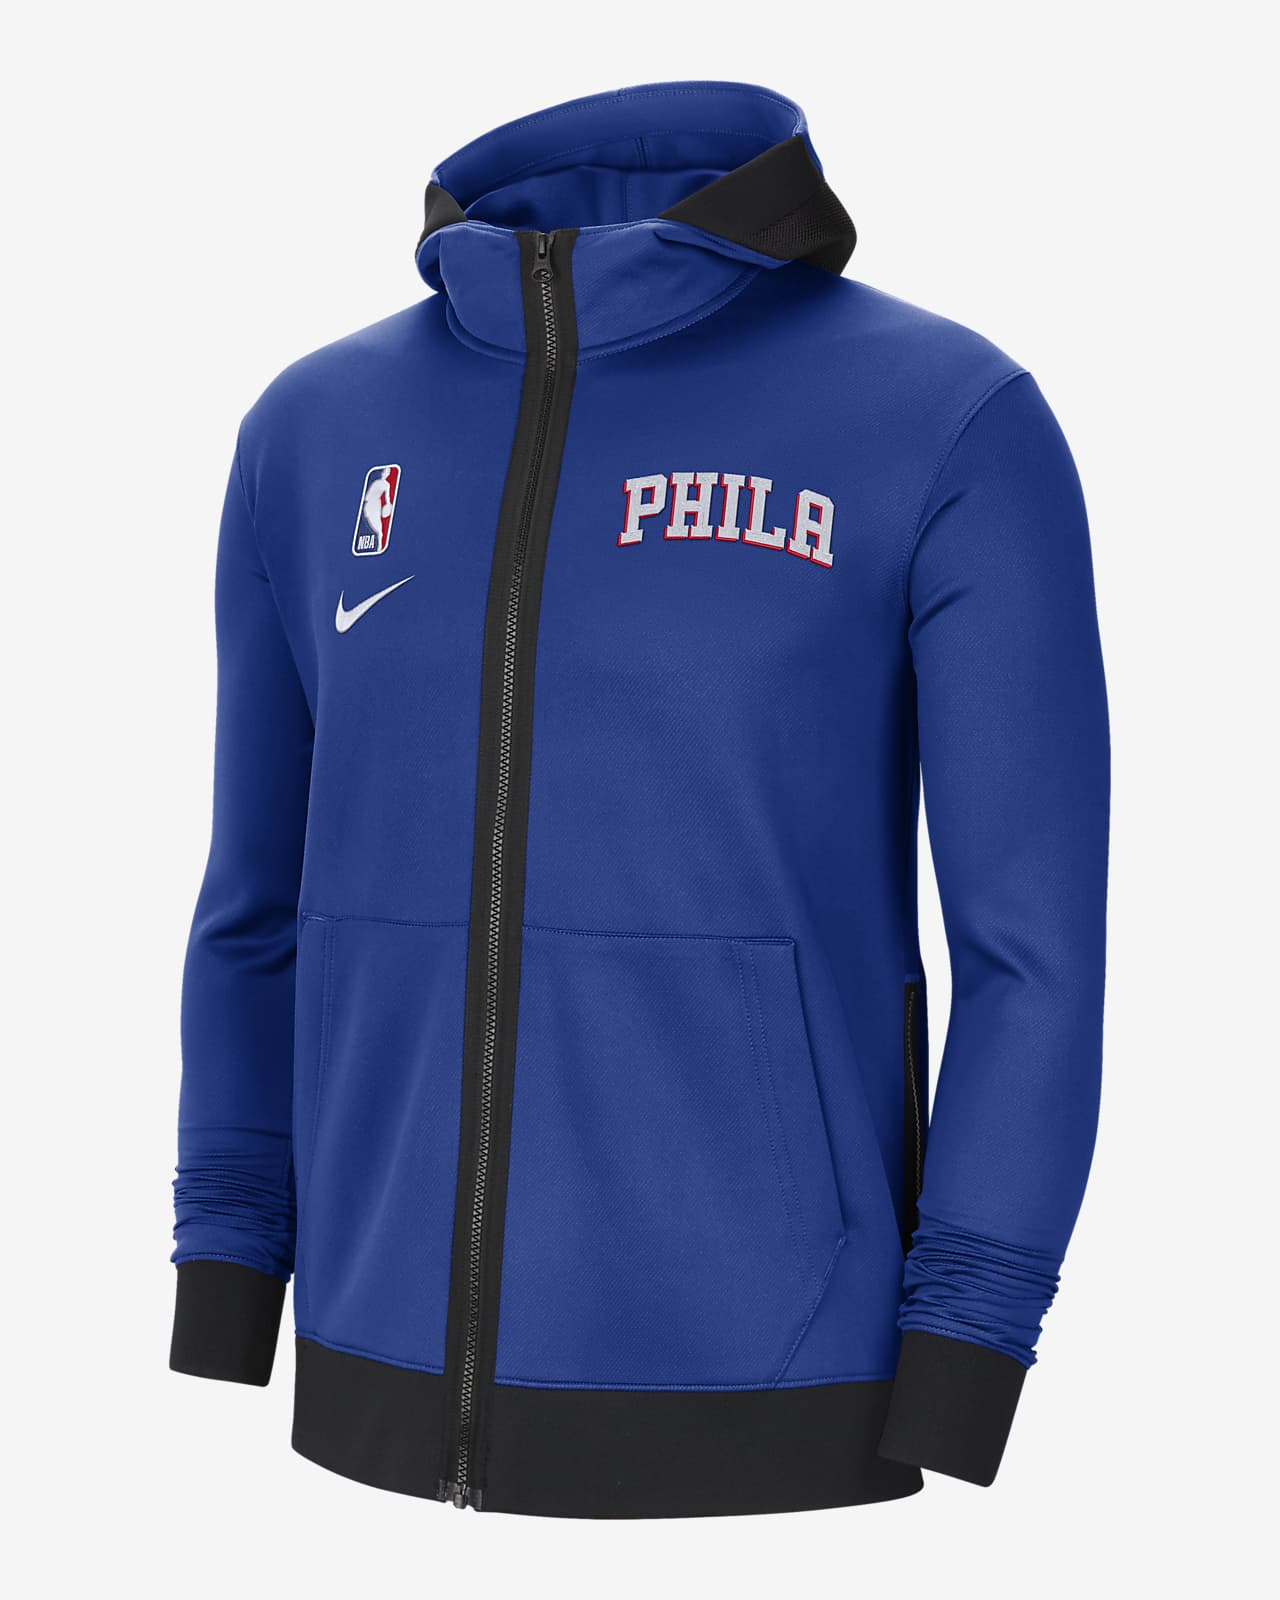 Philadelphia 76ers Showtime Men's Nike Therma Flex NBA Hoodie